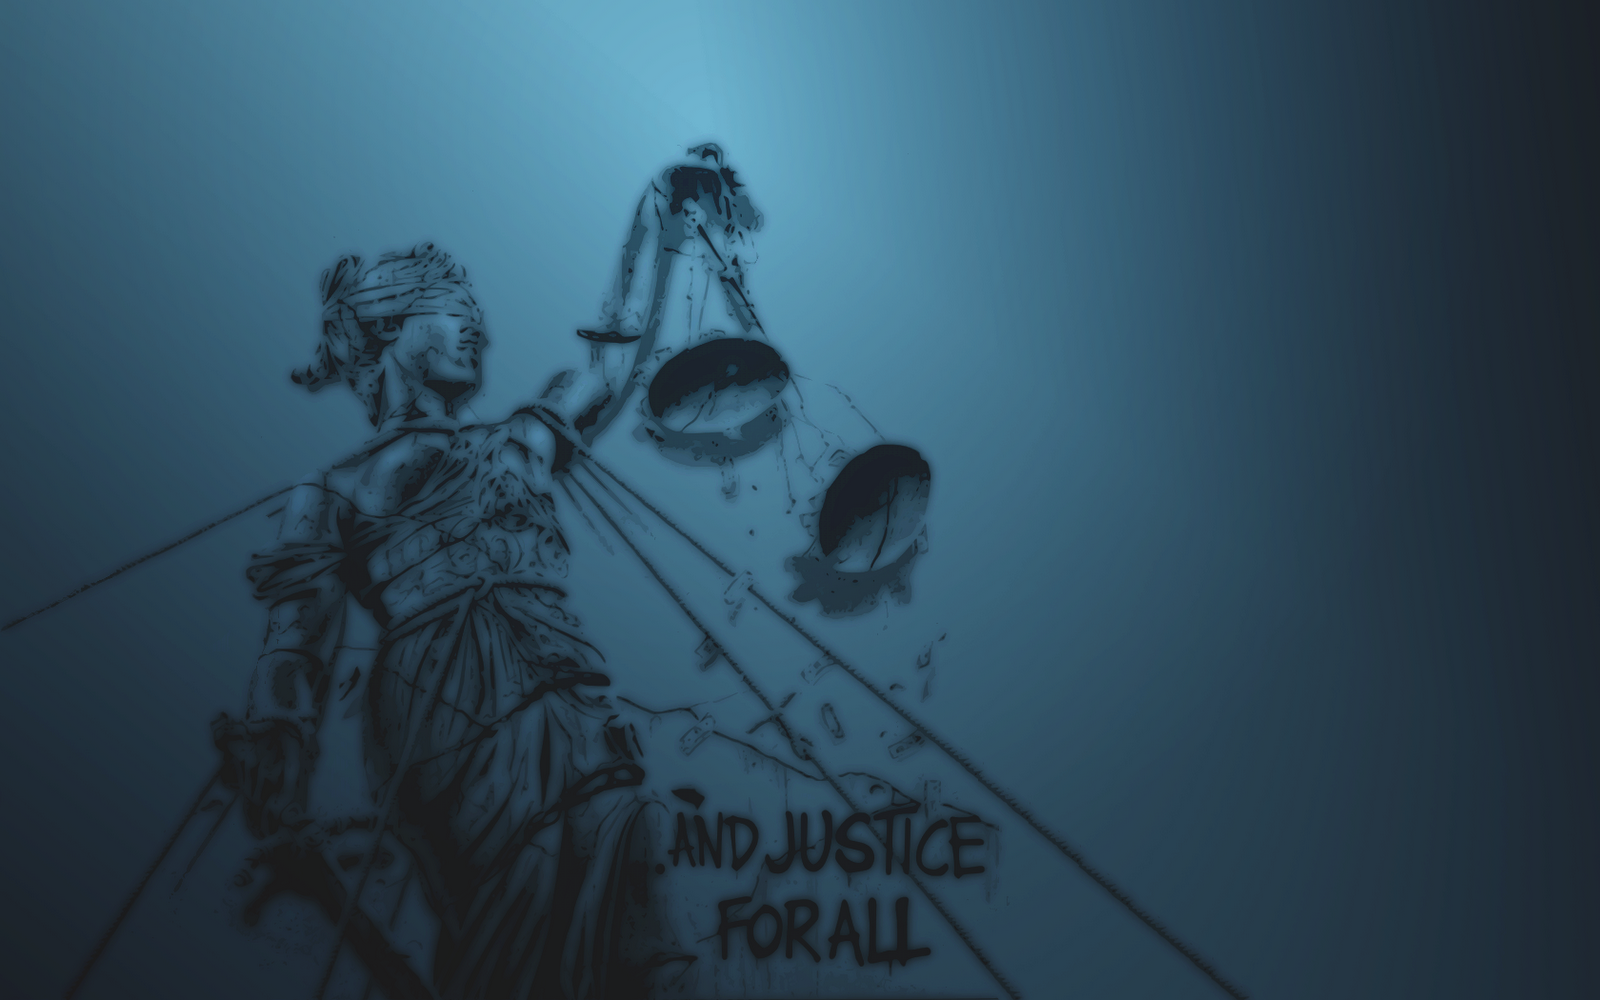 Free Metallica And Justice For All Wallpapers Hd